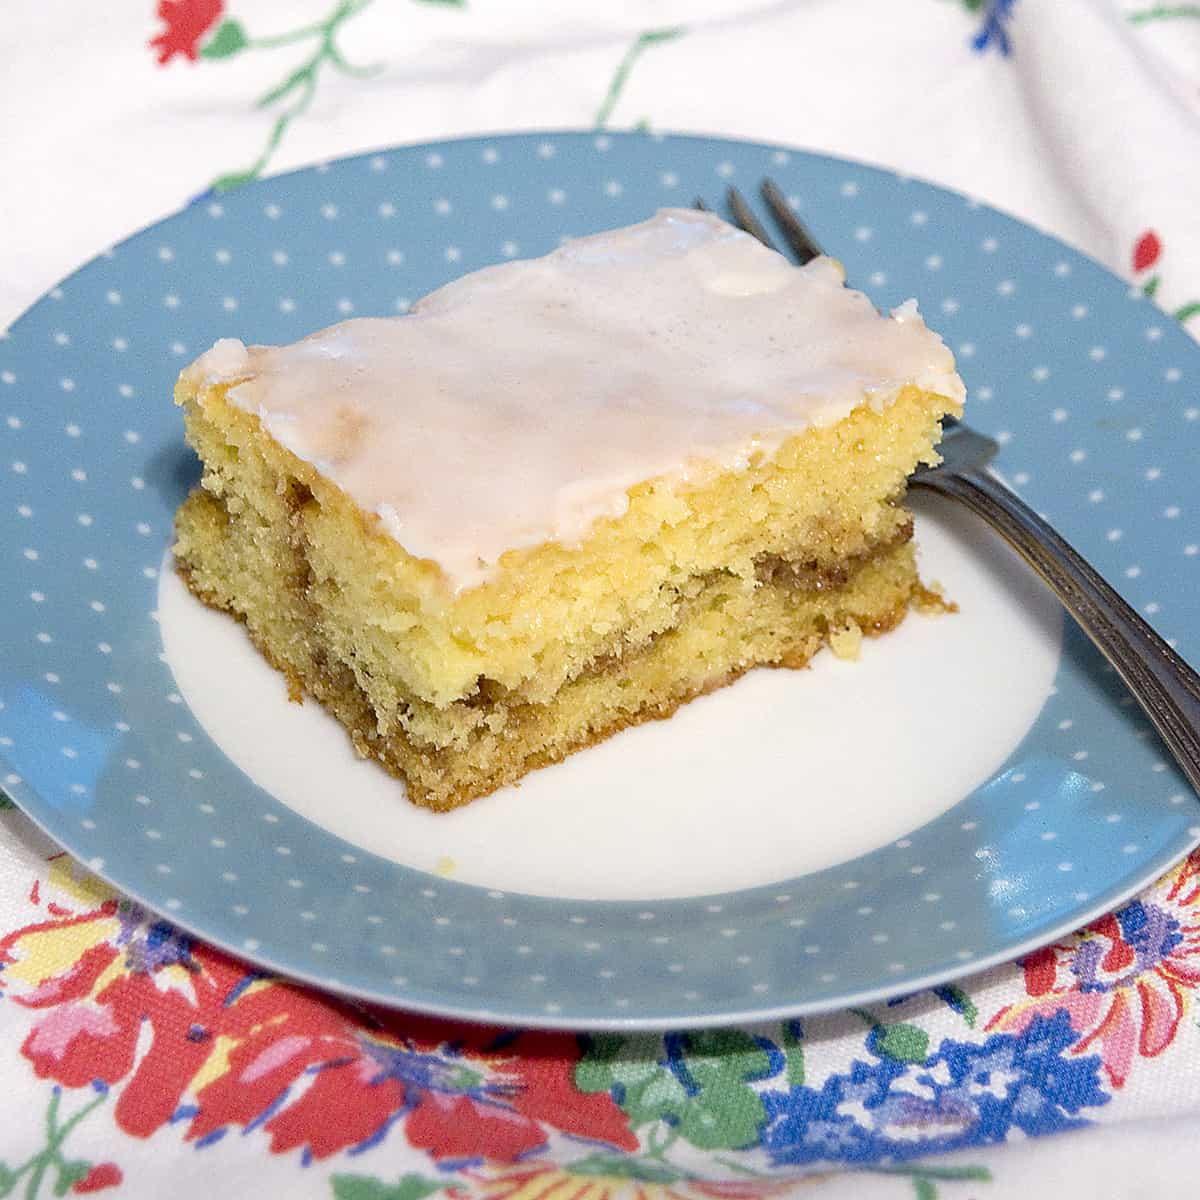 This honey bun cake uses a boxed cake mix and tastes for all the world like its famous namesake. So much fun and so easy! From @NevrEnoughThyme https://www.lanascooking.com/honey-bun-cake/